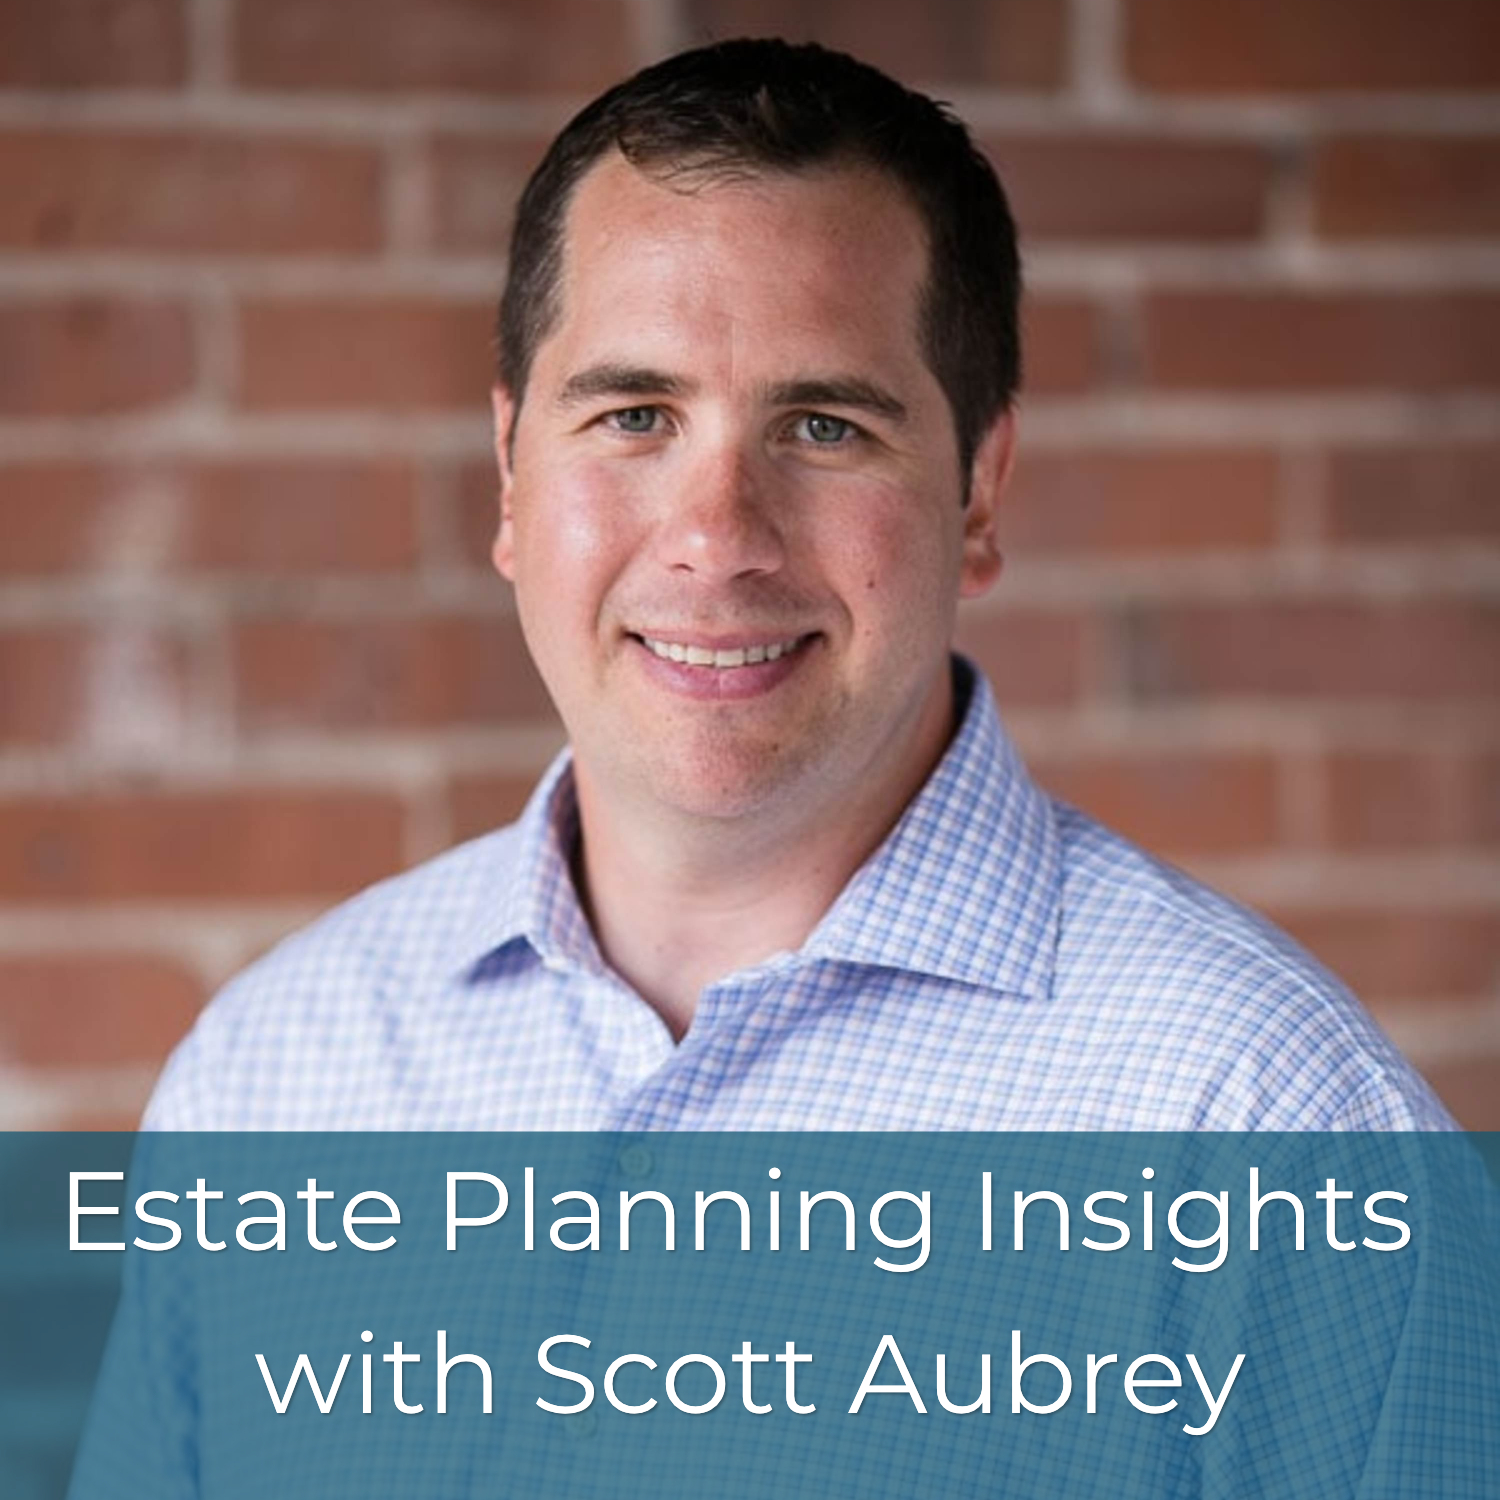 Estate Planning Insights